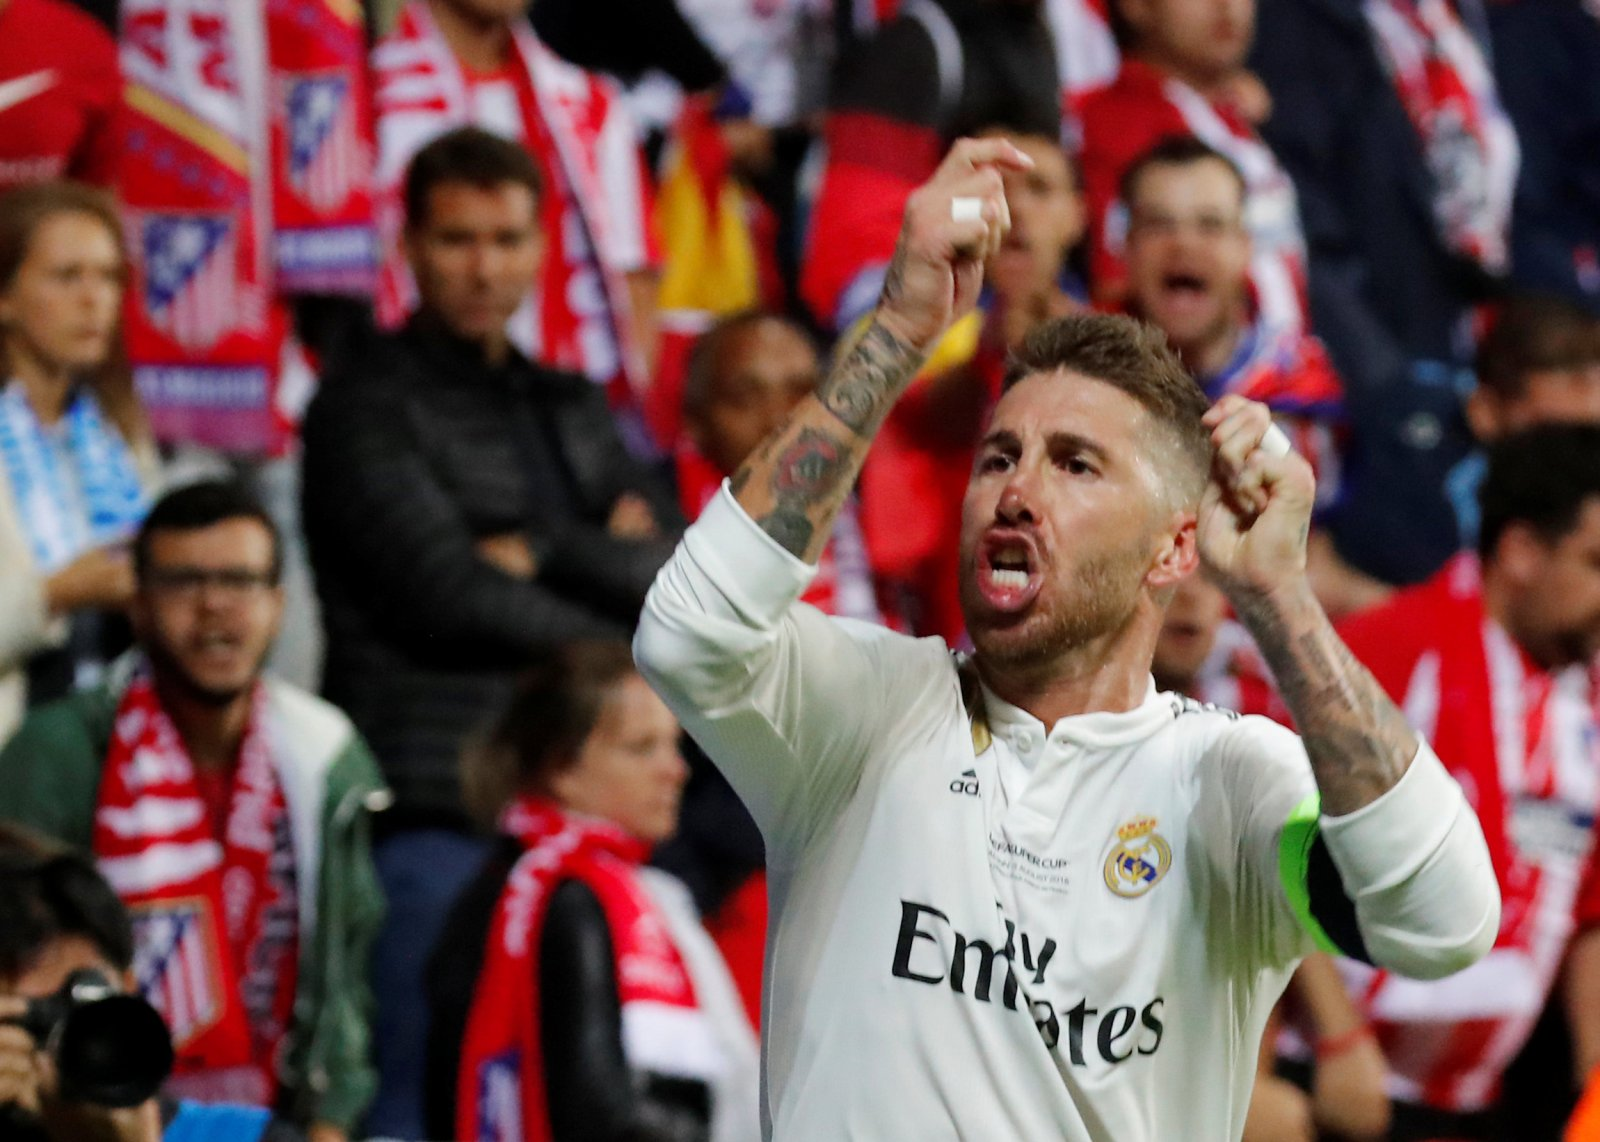 Sergio Ramos celebrates scoring against Atletico Madrid at the UEFA Super Cup 2018